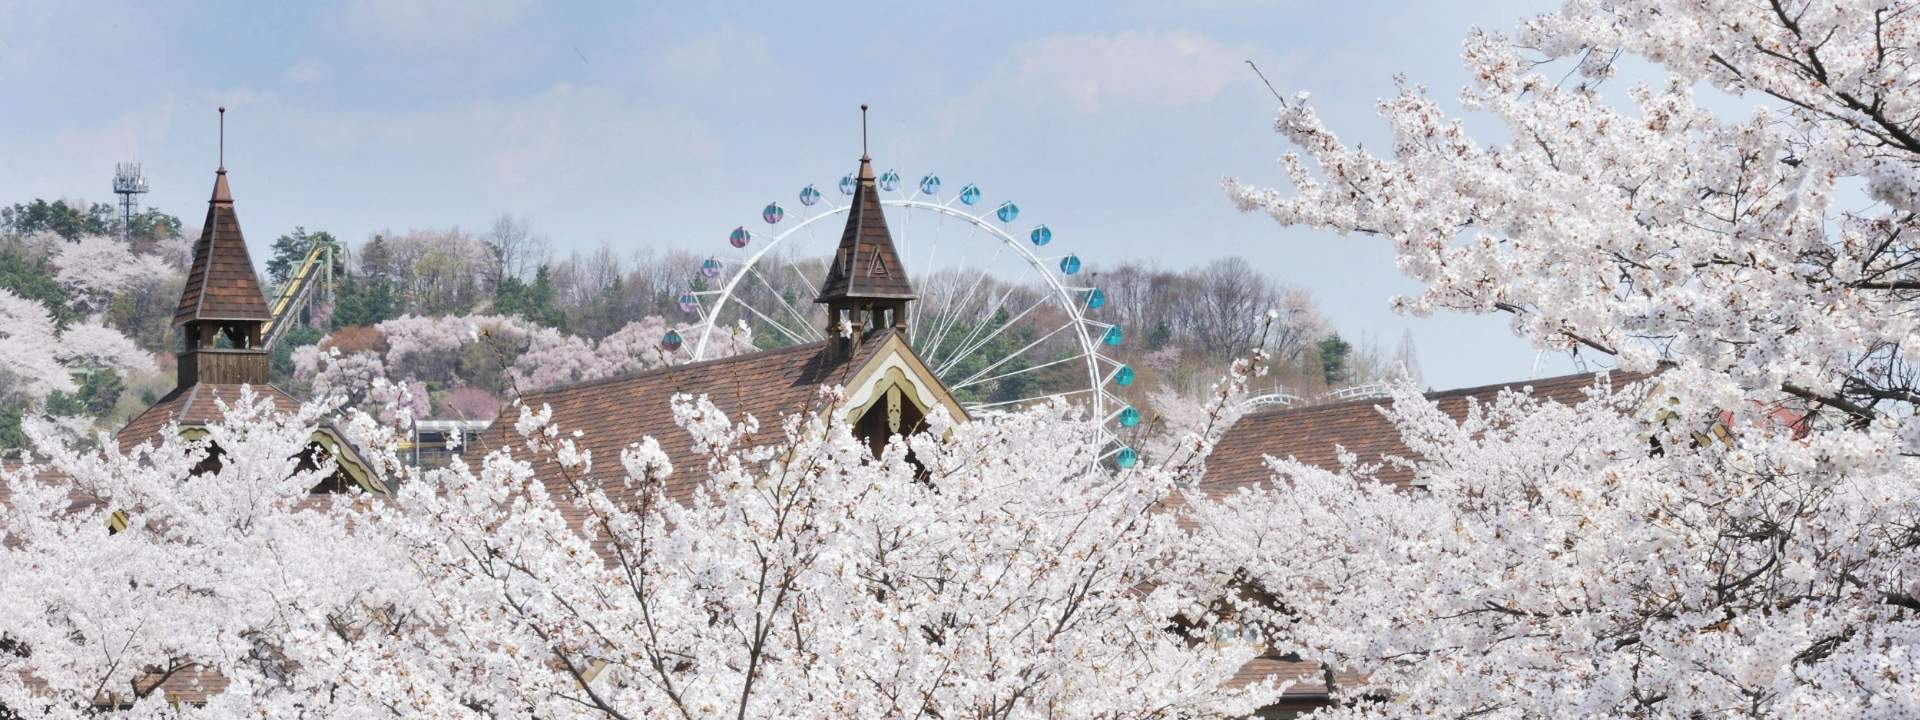 Klook Tailored Bus to Everland from Seoul (Day Trip) - Klook